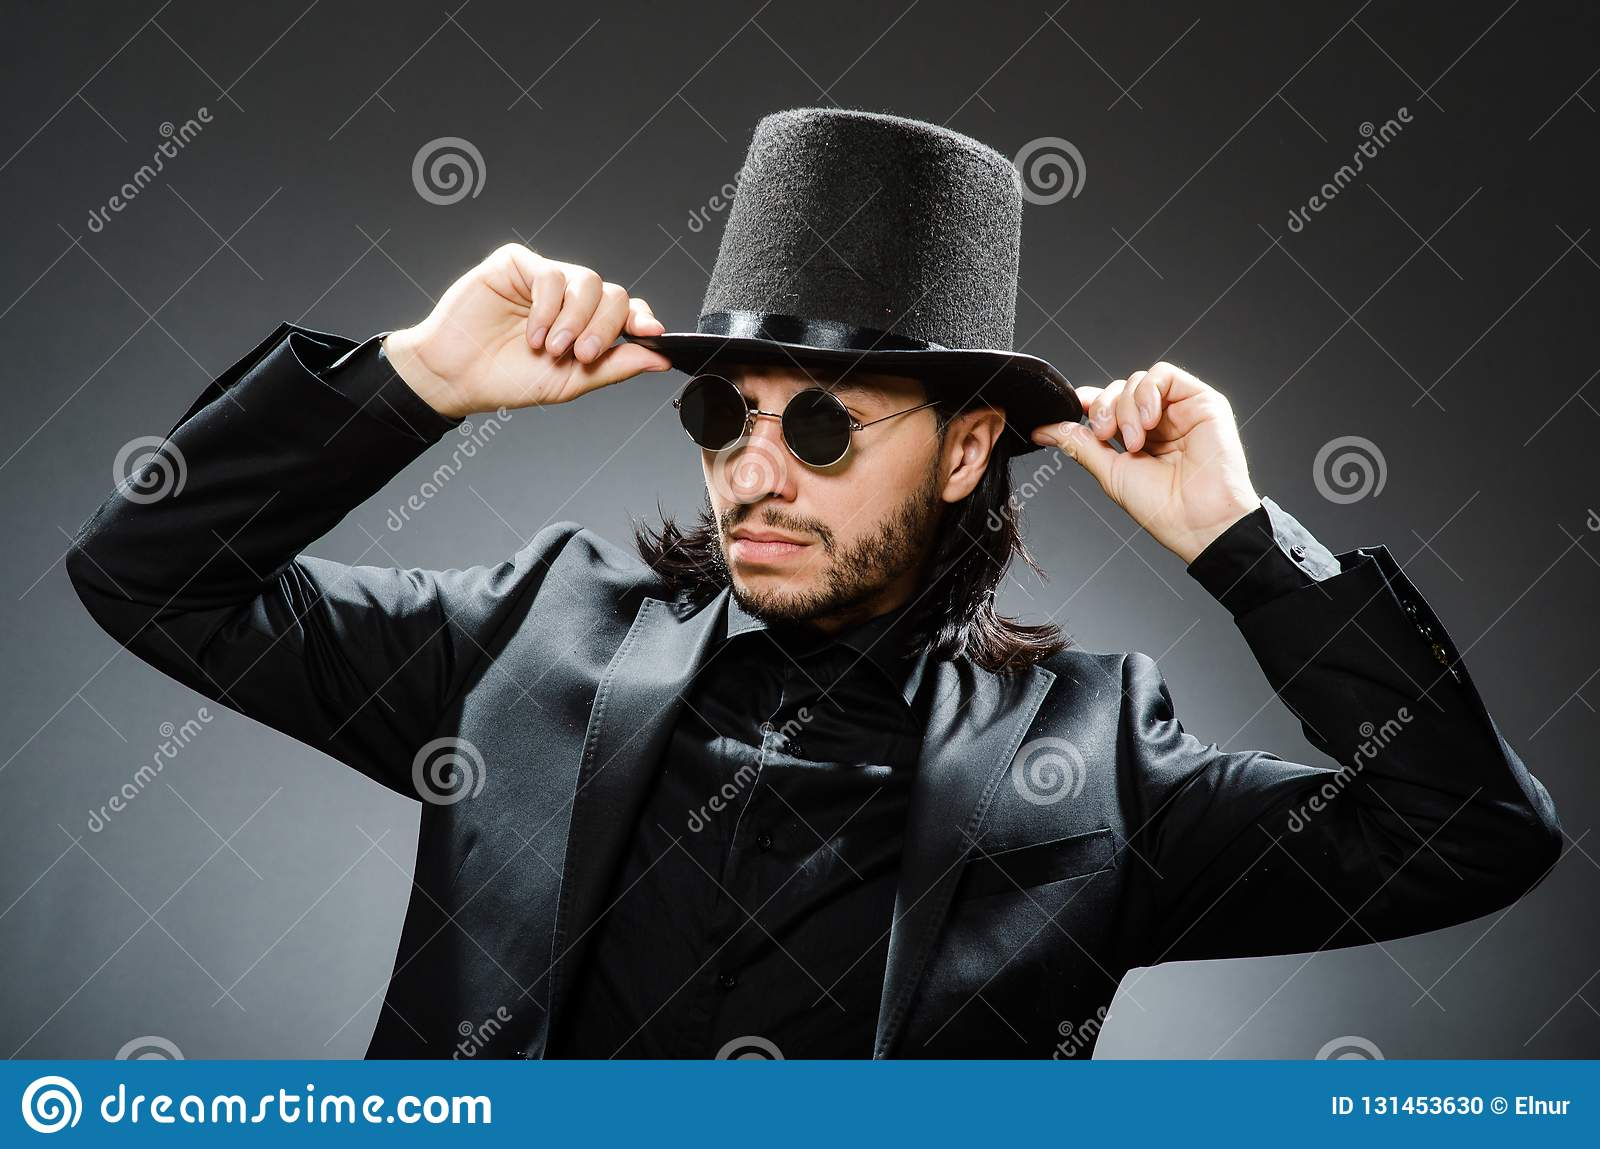 46eb246382e The Vintage Concept With Man Wearing Black Top Hat Stock Photo ...